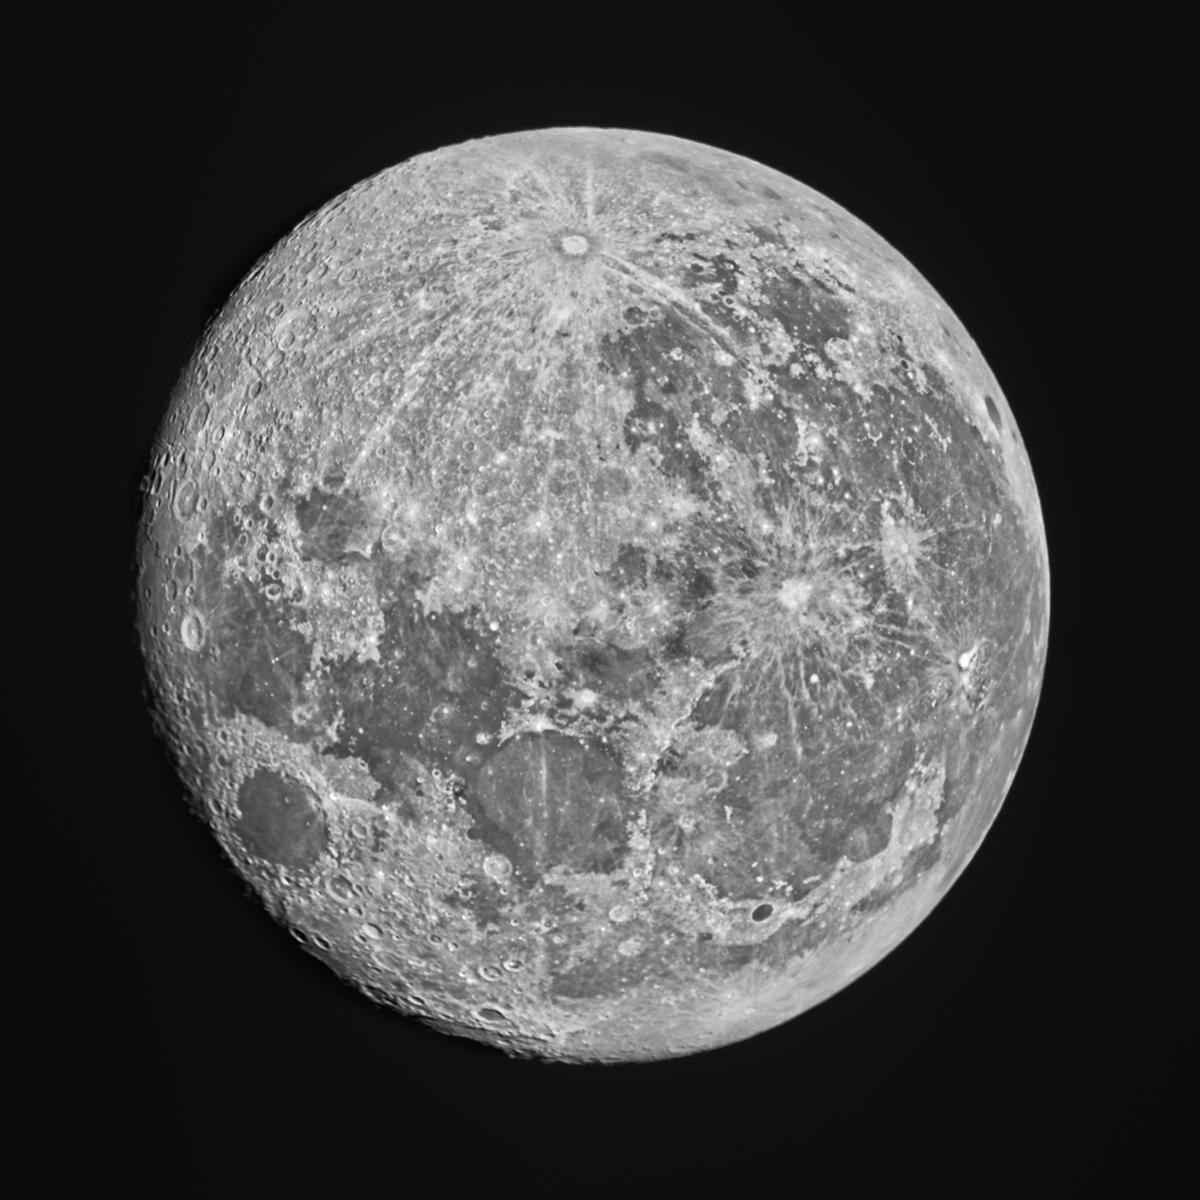 97% Moon in H alpha